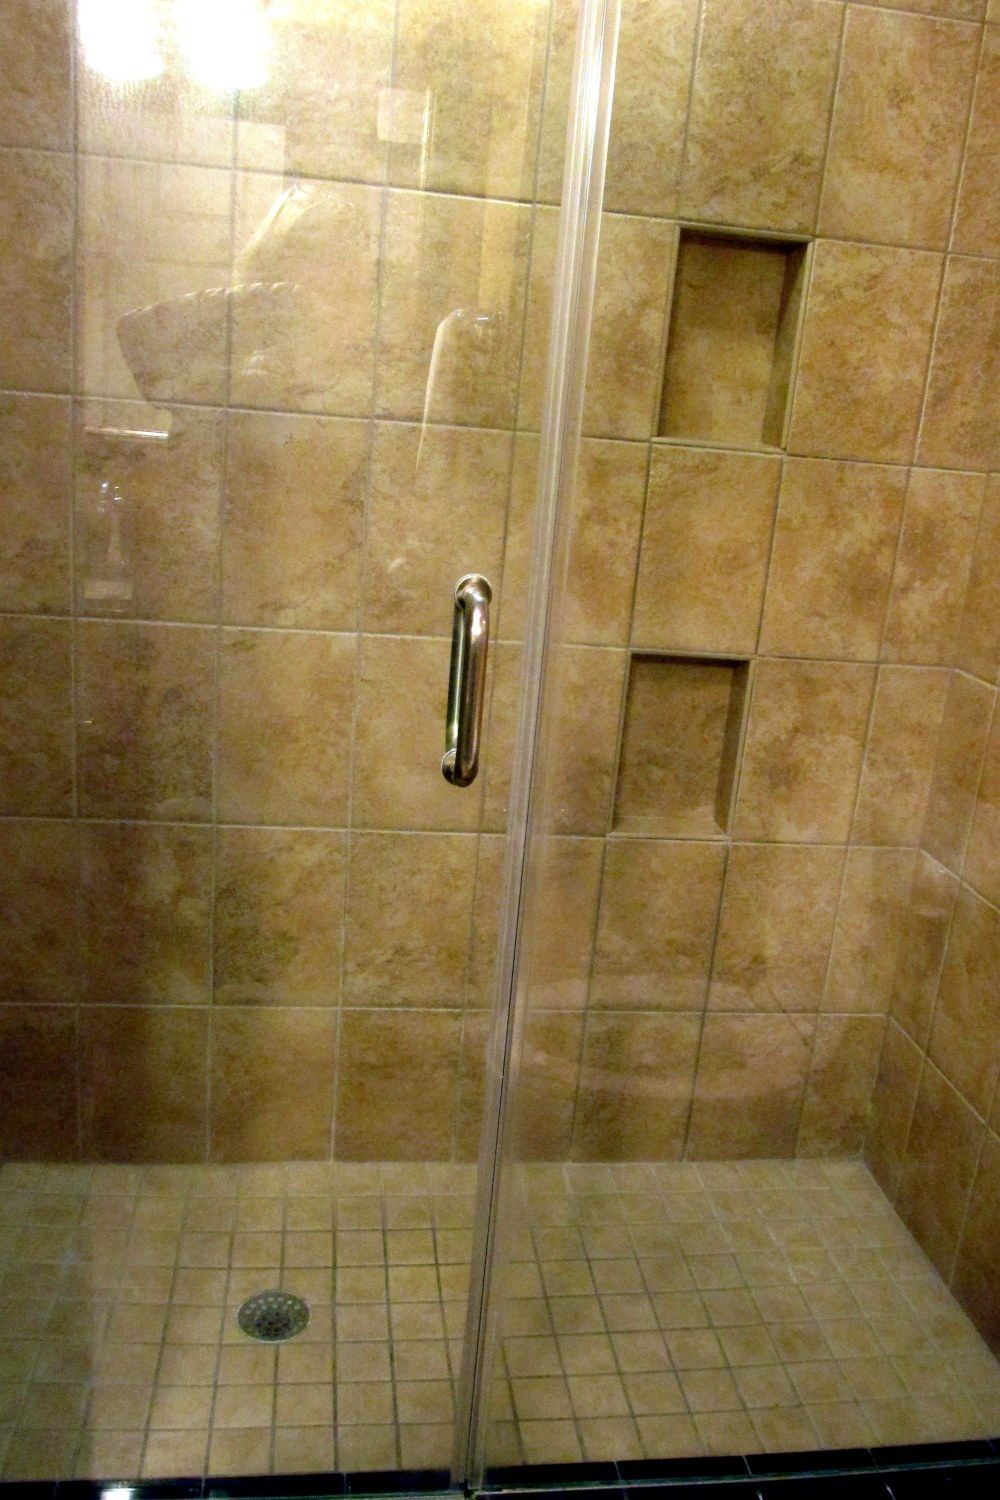 showerbathroomHIXSavannahGA17Dec2016